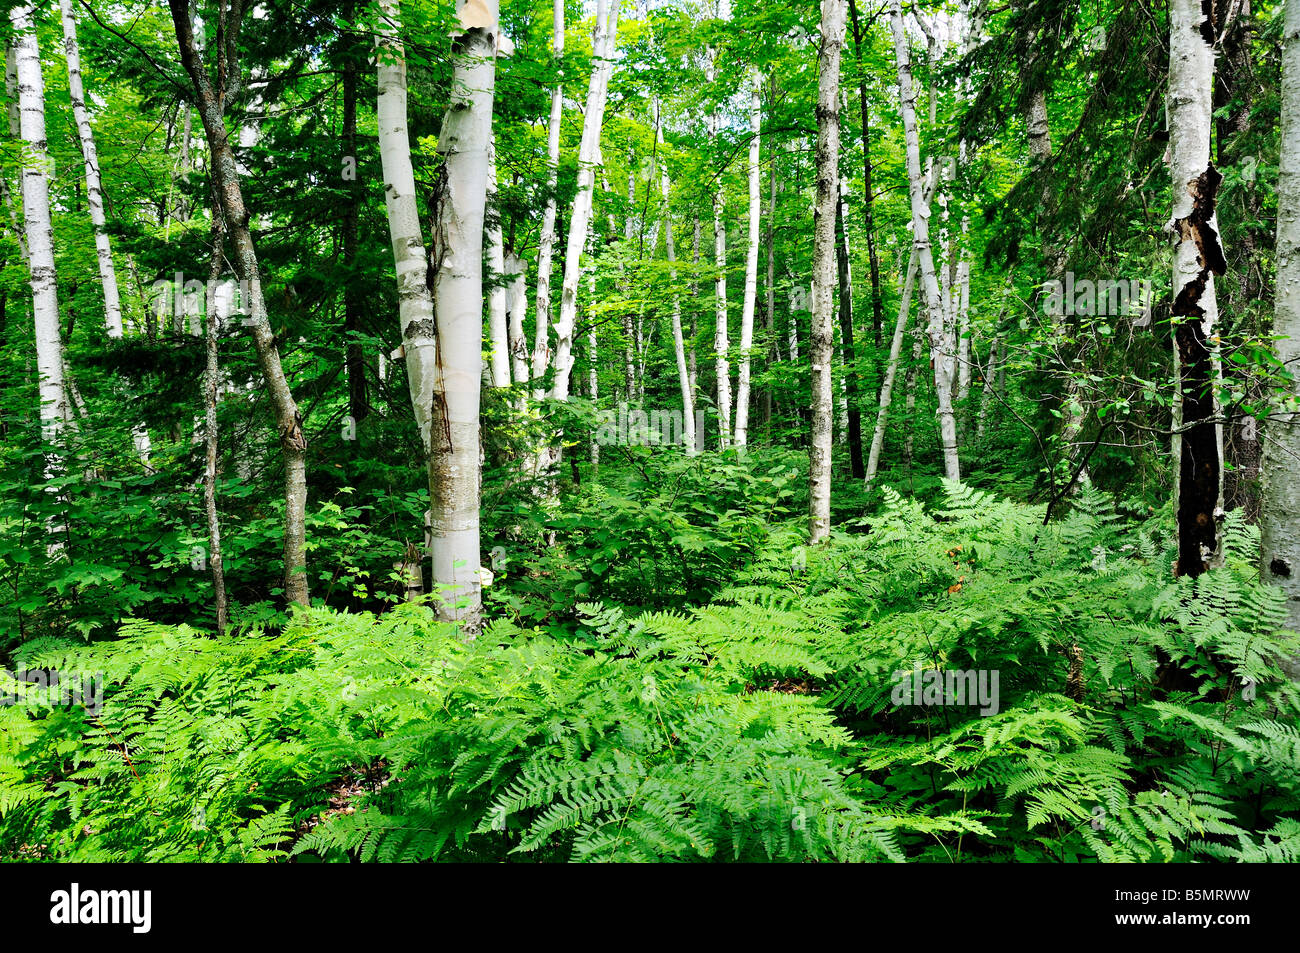 Birch Trees and green ferns in Algonquin Provincial Park in Ontario Canada - Stock Image